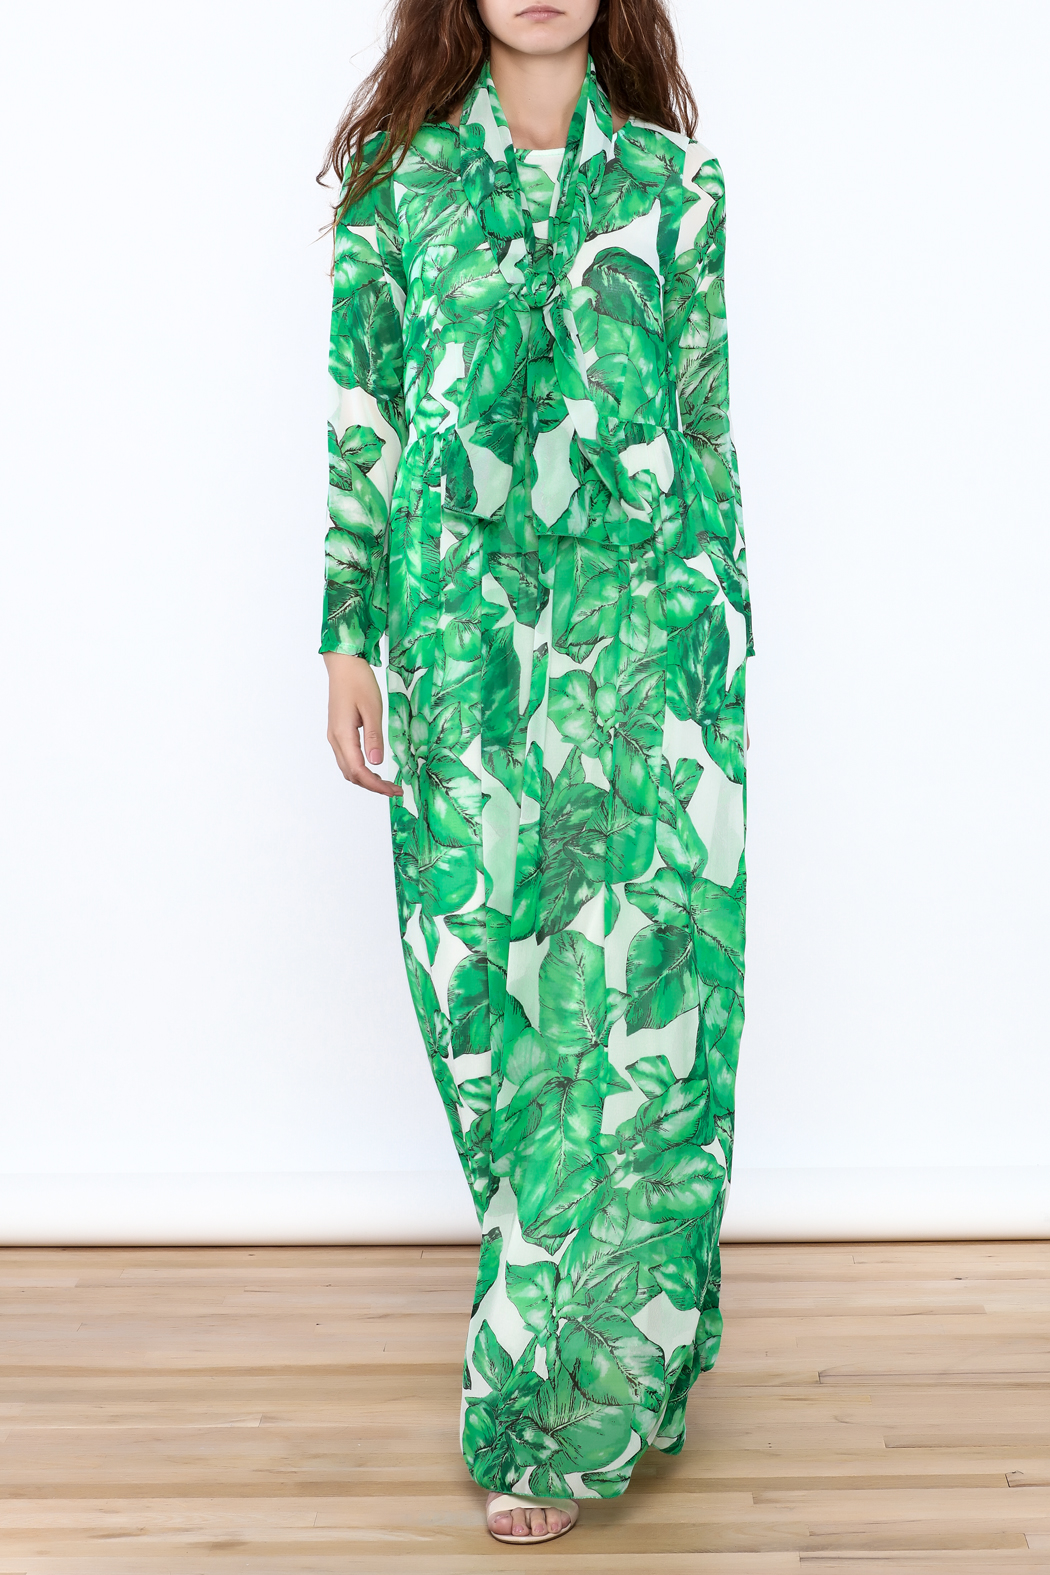 sent with love Banana Leaf Print Dress - Main Image